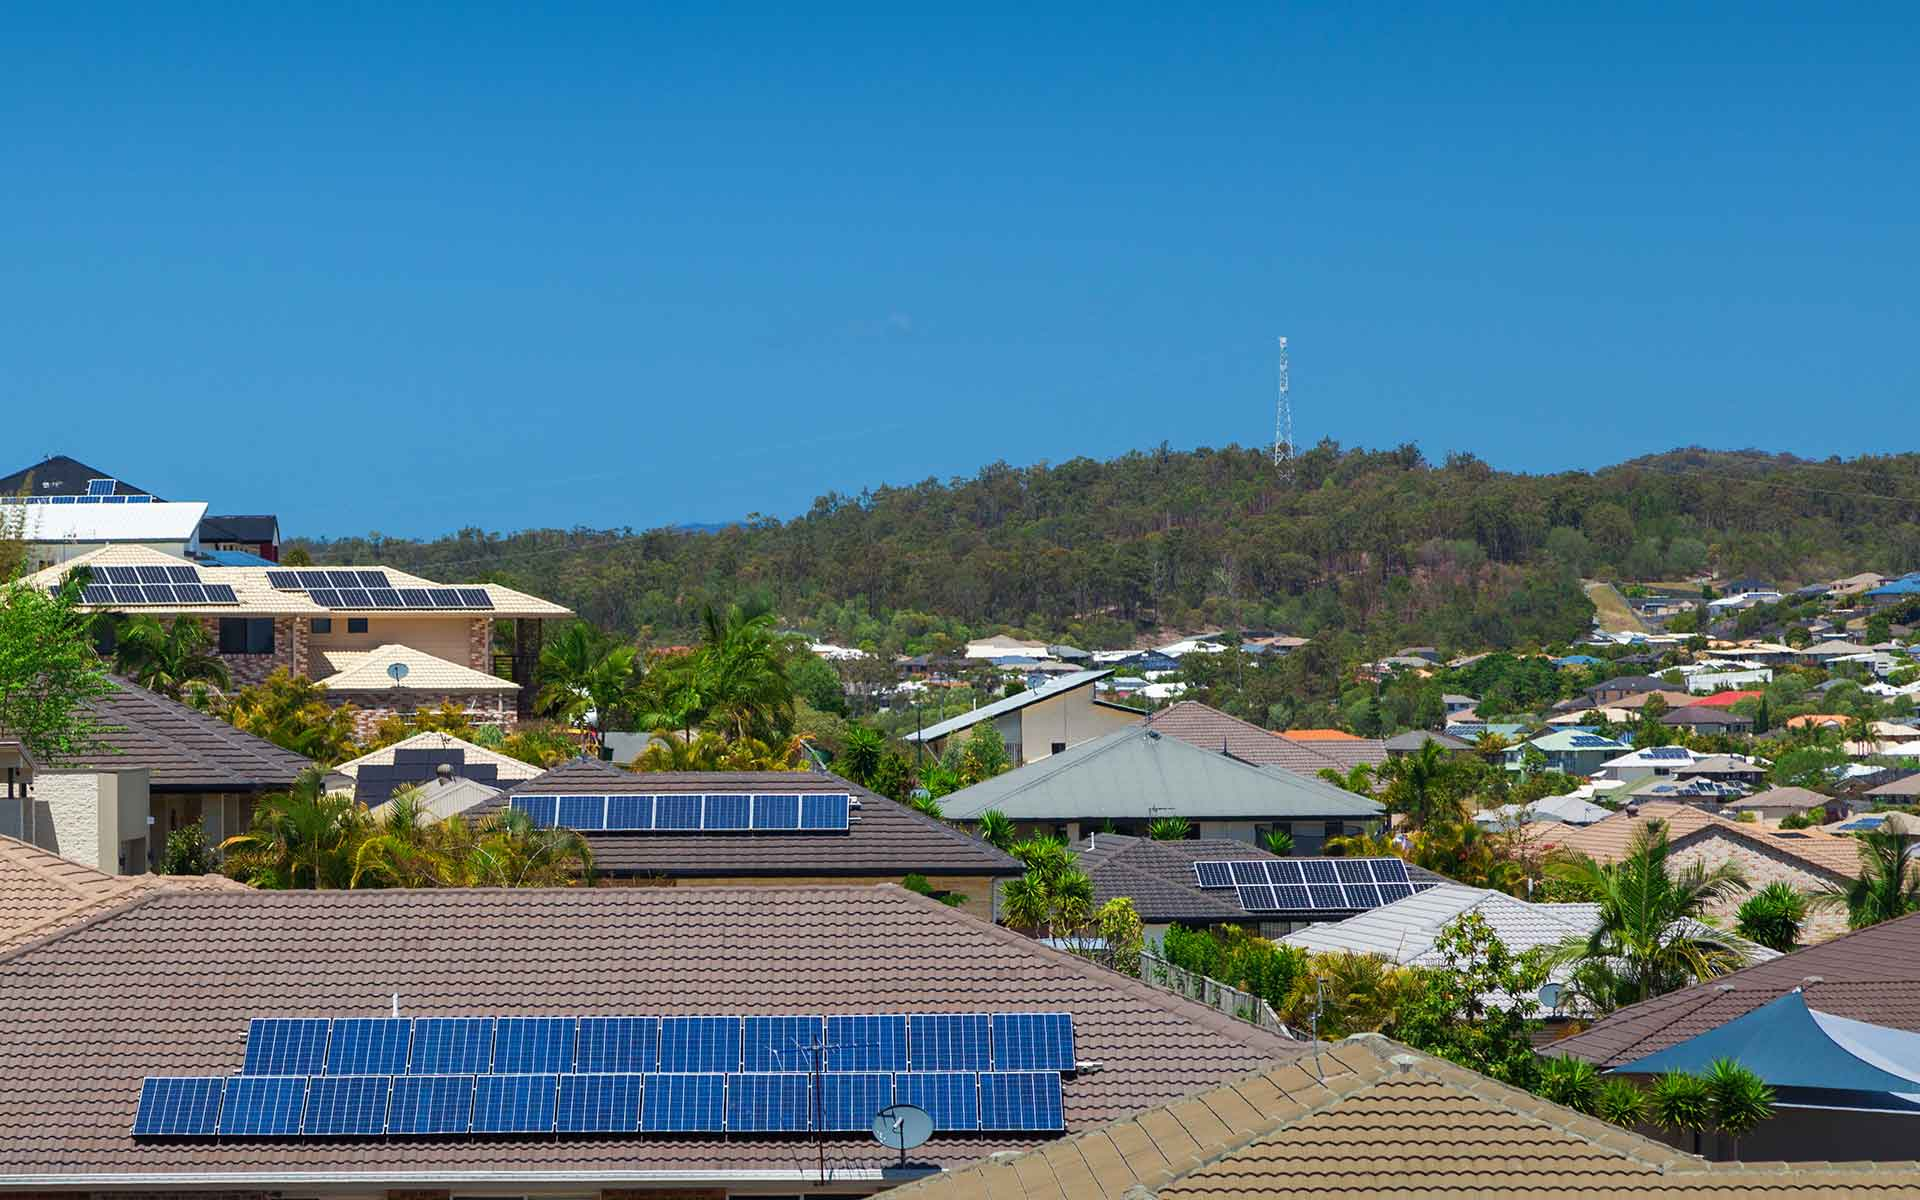 Image - Rooftops with solar panels